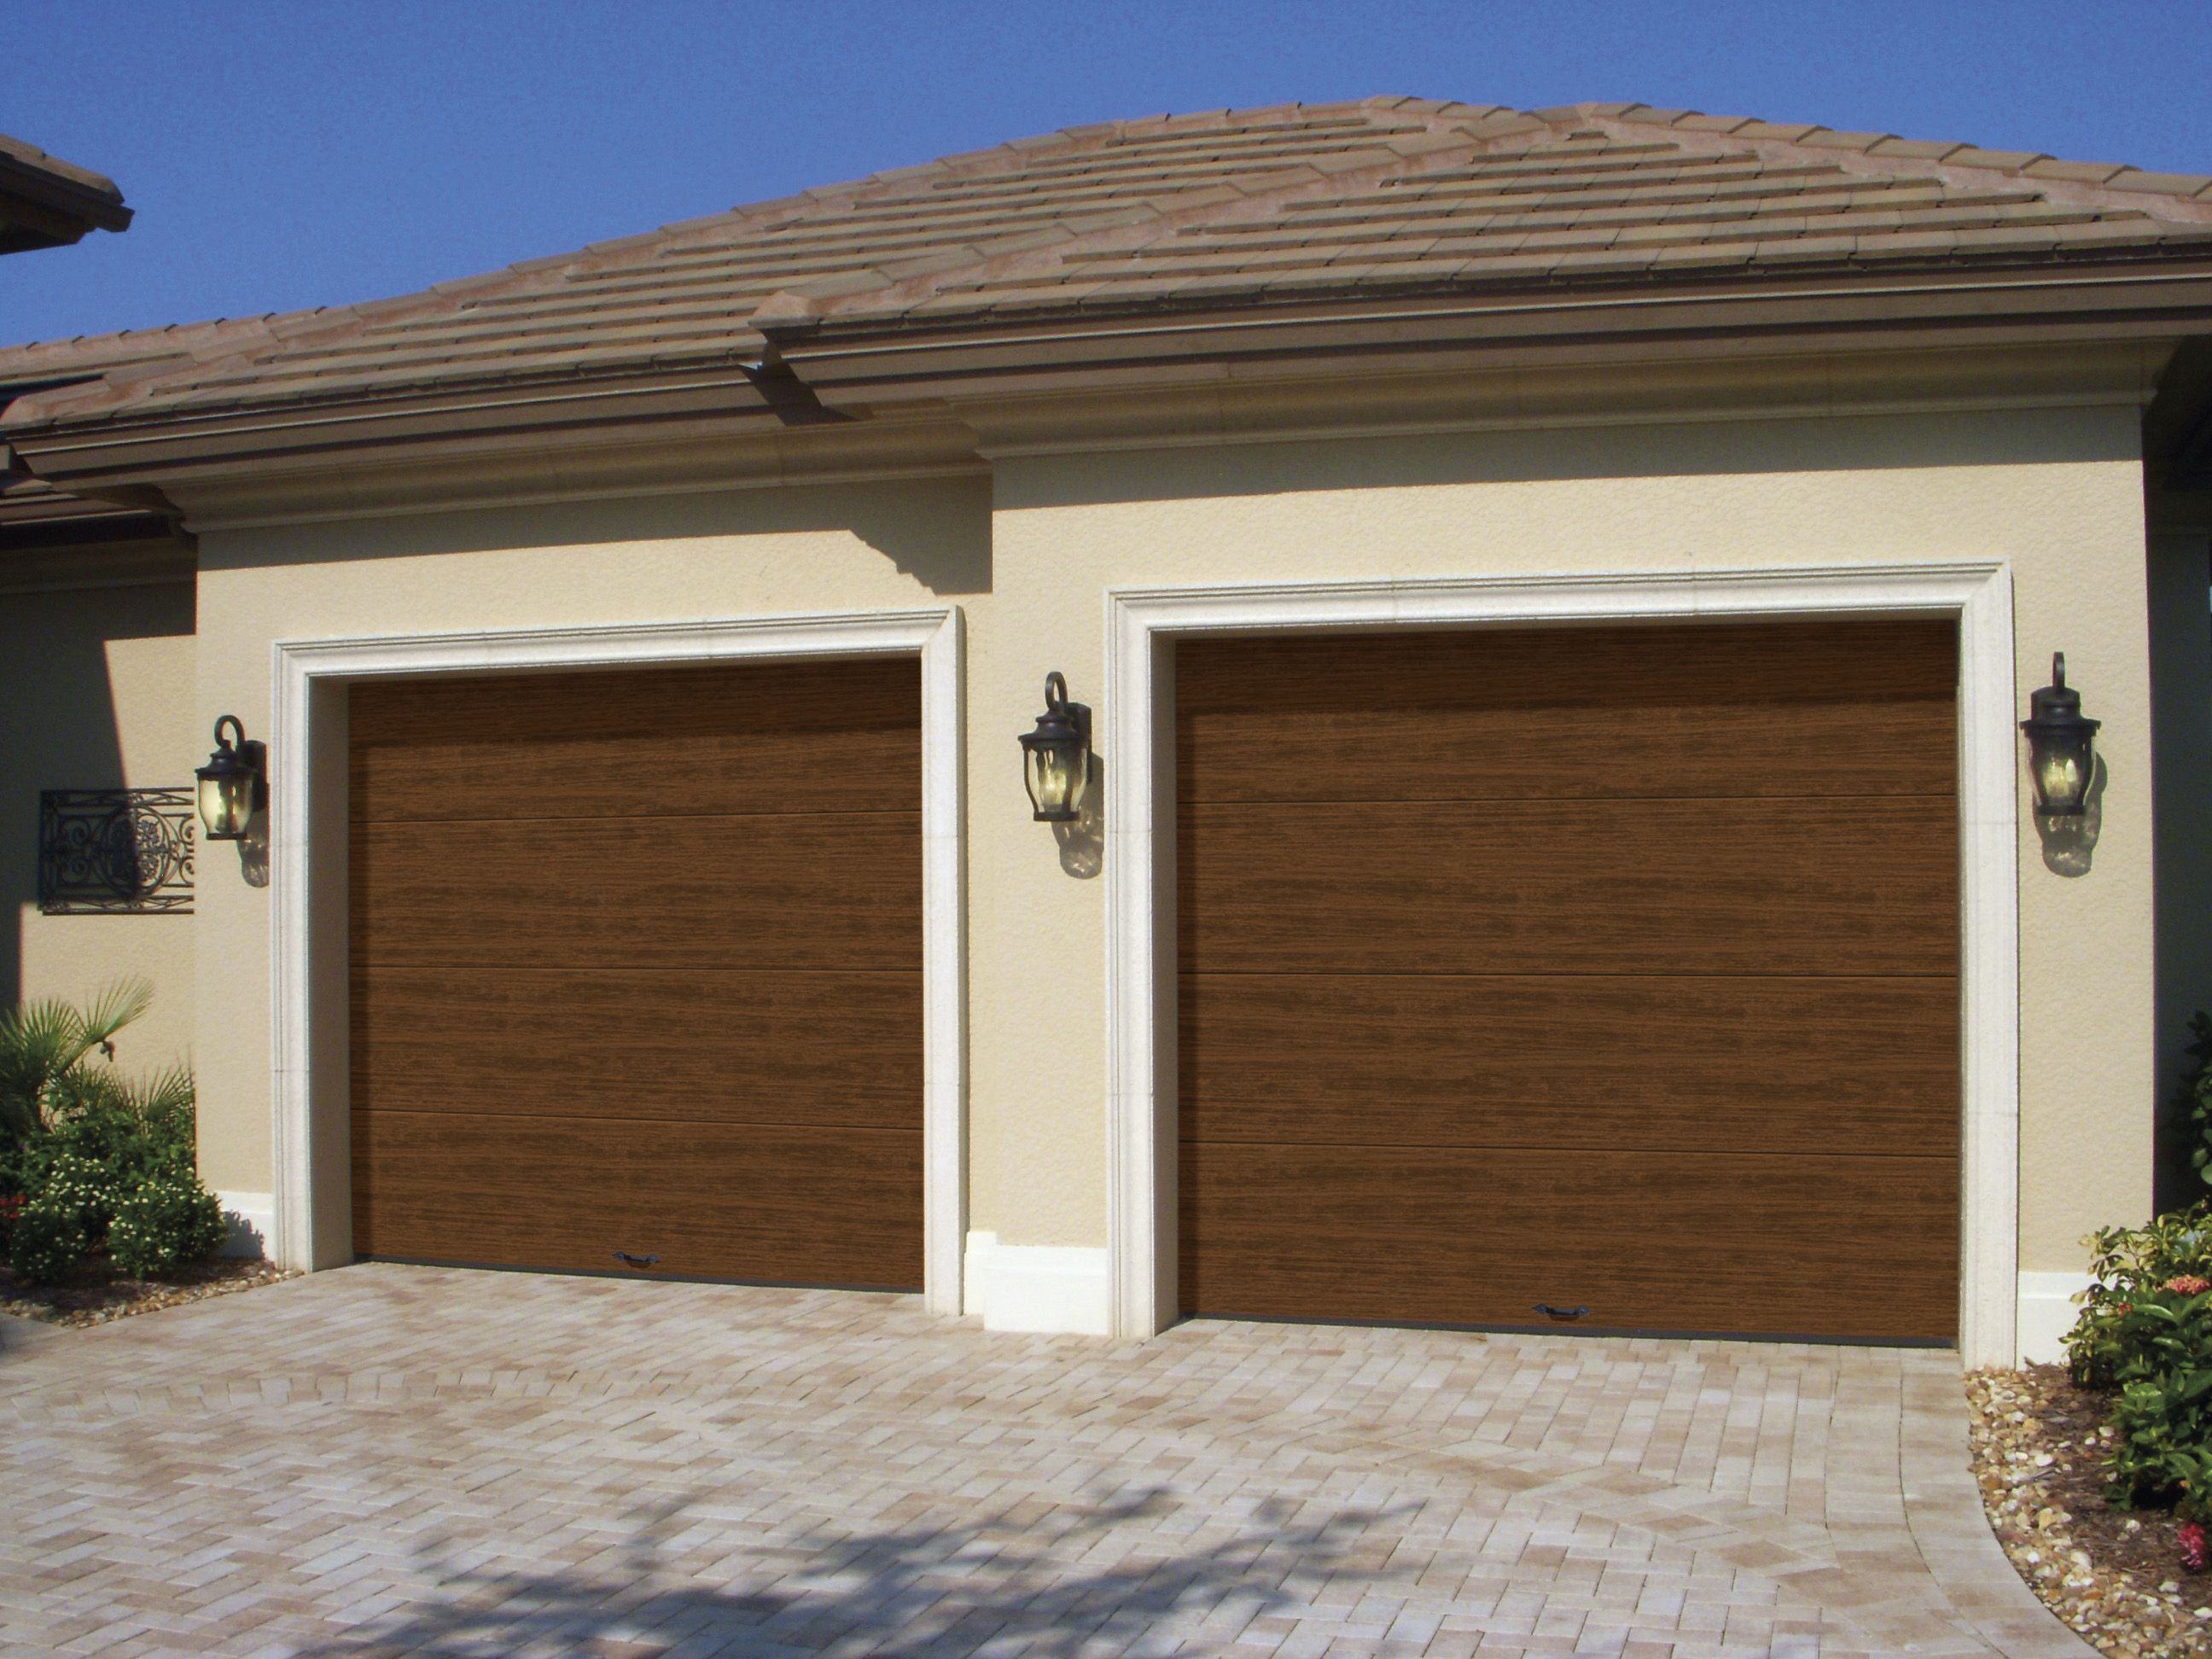 Clopay modern steel collection an insulated low for Flush panel wood garage door